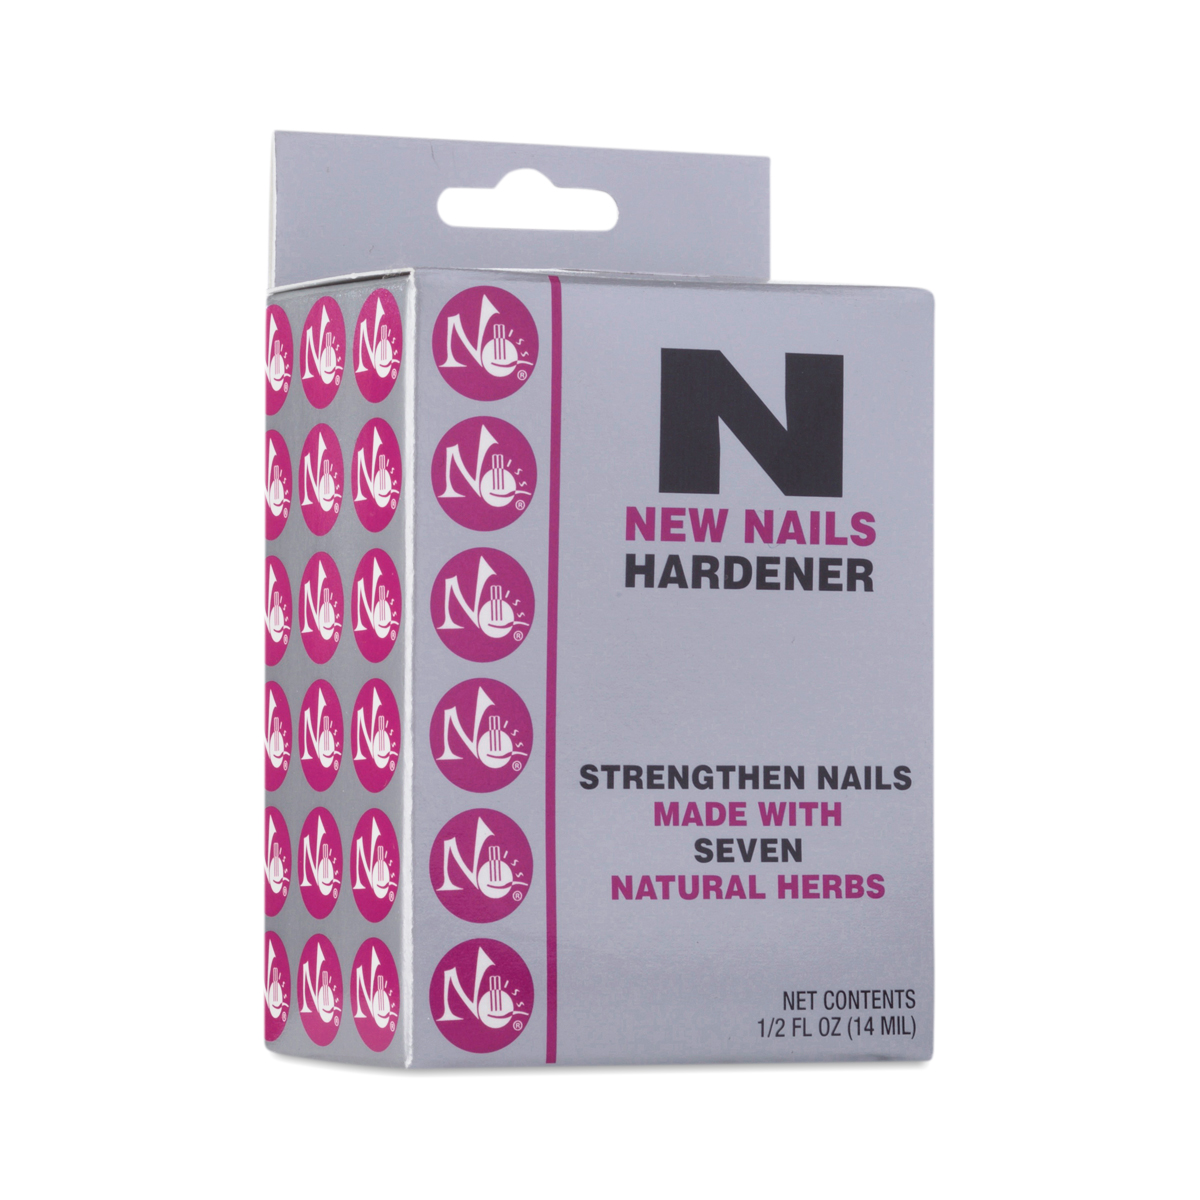 New Nails Nail Strengthener by No Miss Cosmetics - Thrive Market